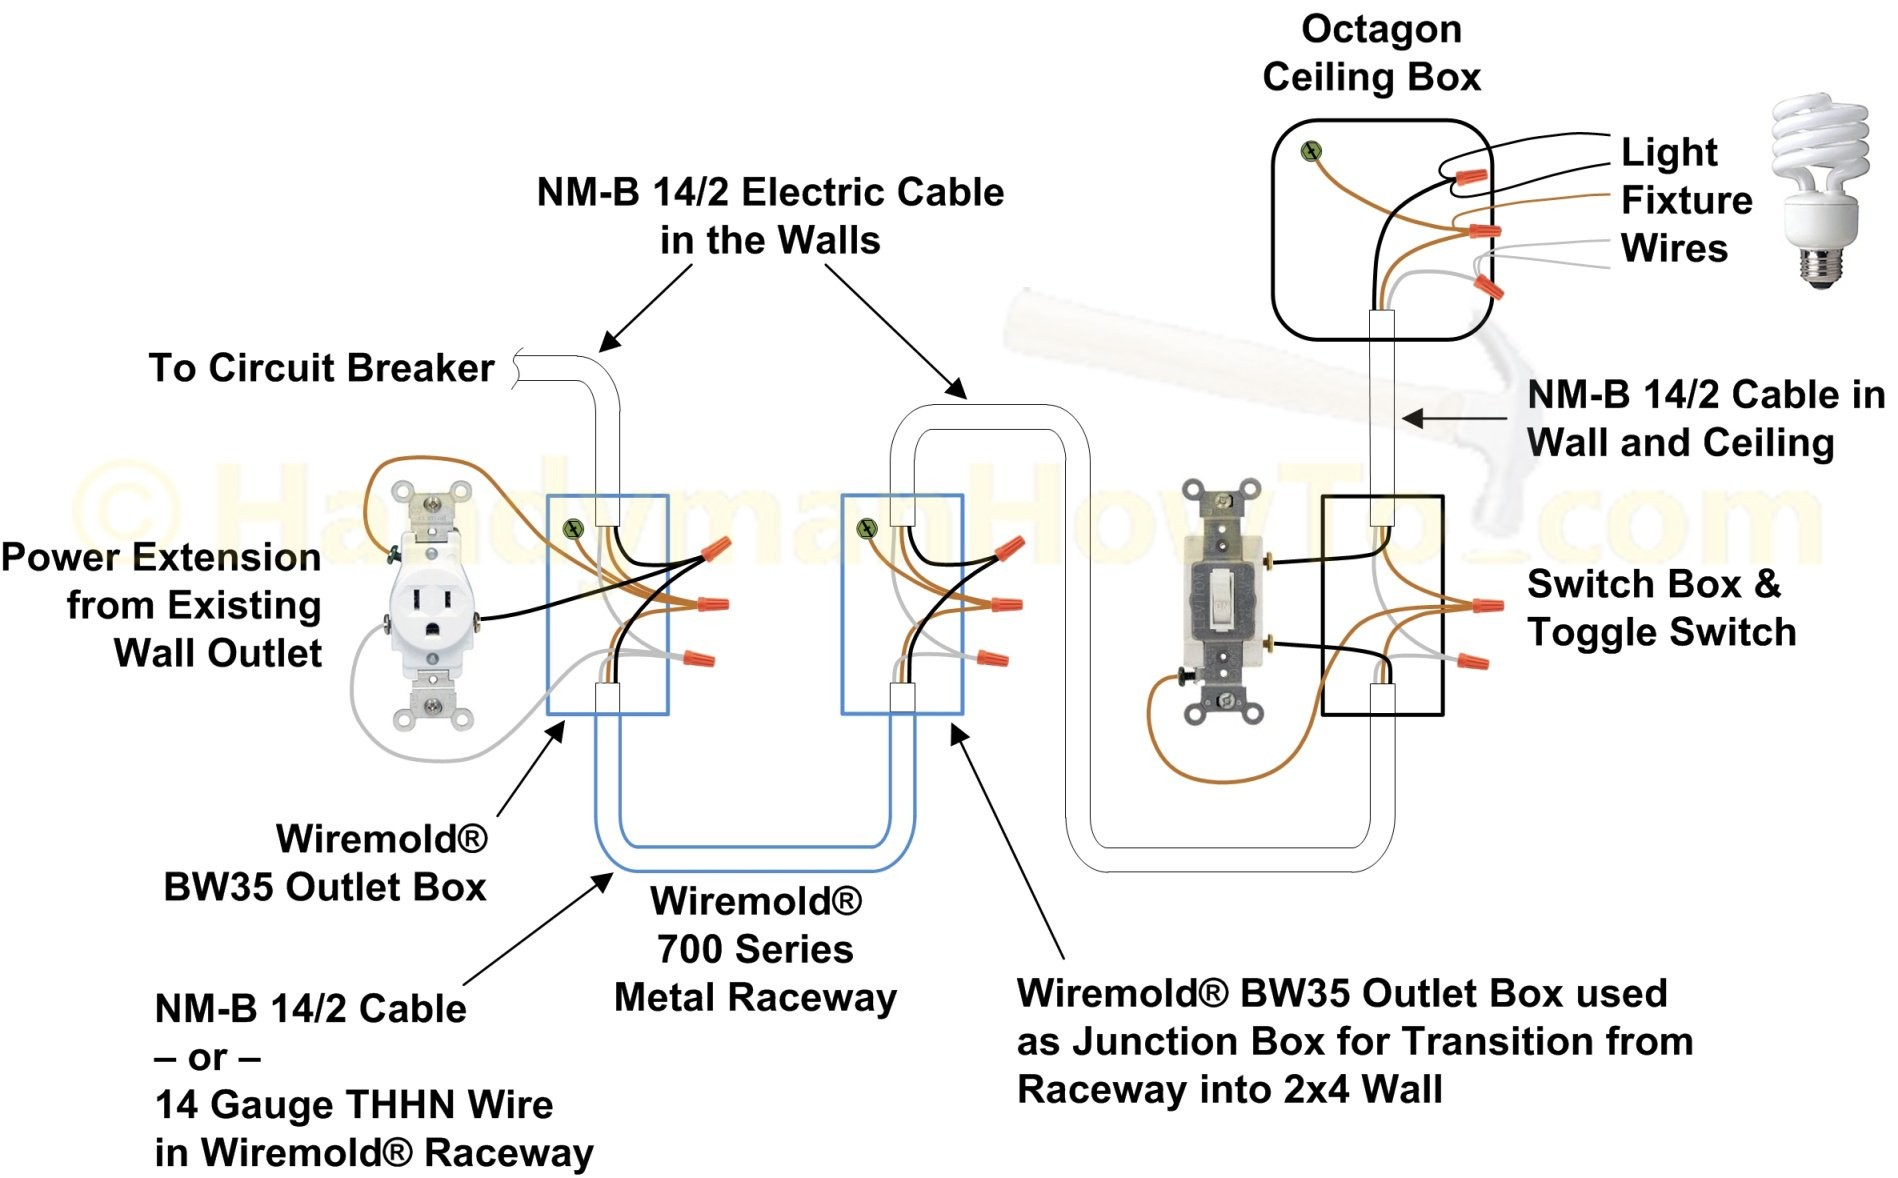 wiring diagram 4 outlet box & 4 gang switch box 3 gang switch box 4 prong dryer plug wiring how to wire a closet light with wiremold wall plug wiring plastic wiring diagram for electrical